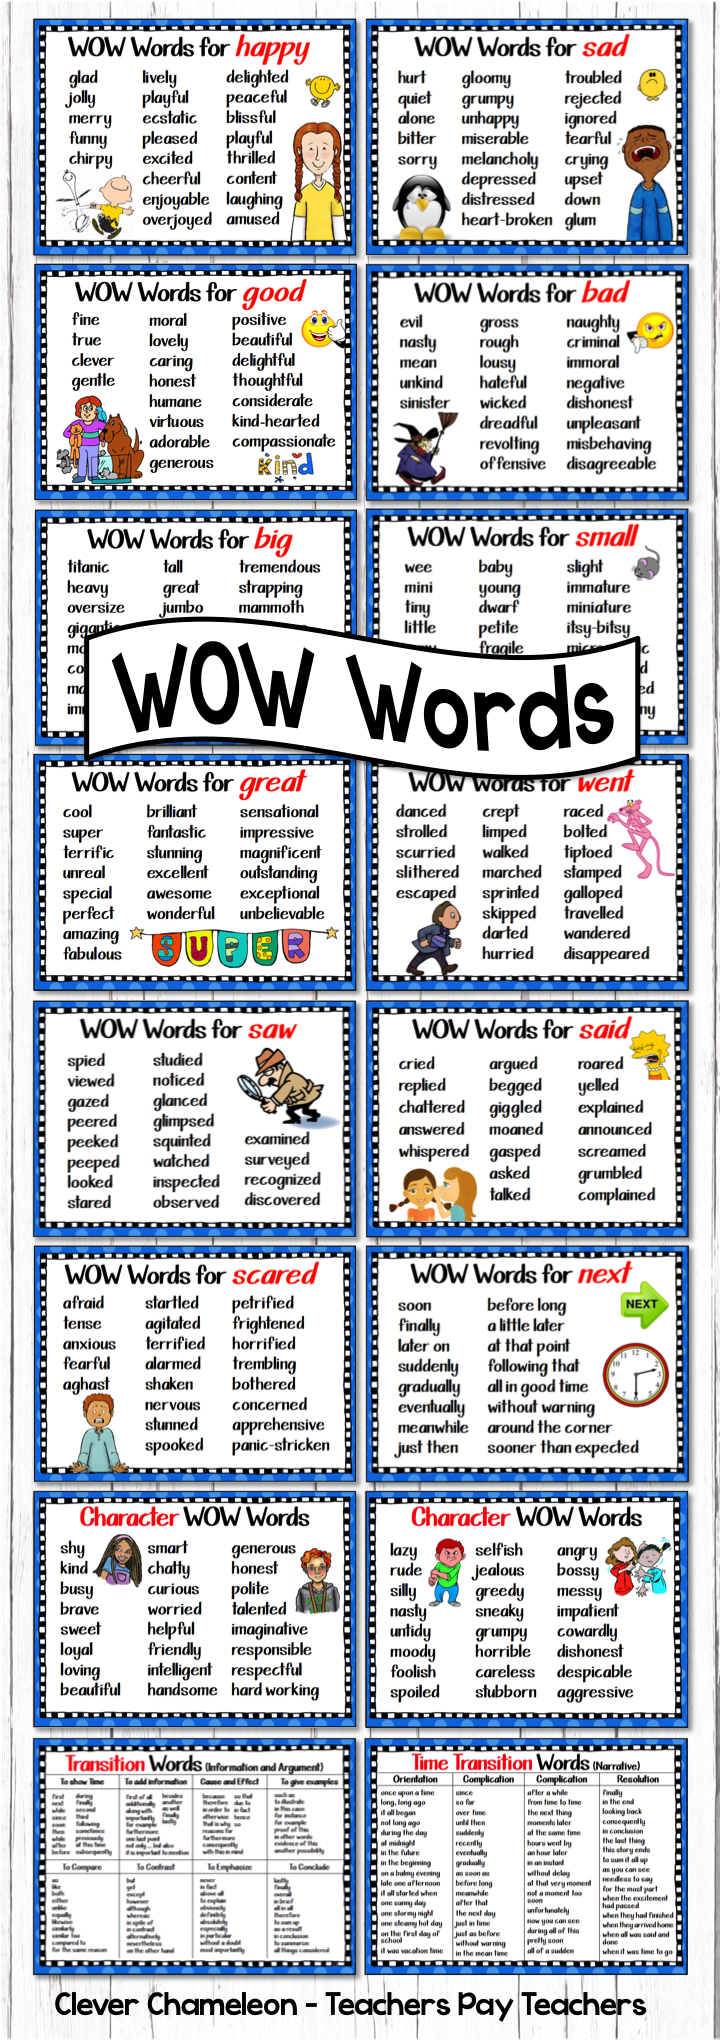 Synonyms Posters - WOW Words | literacy | Utbildning ...